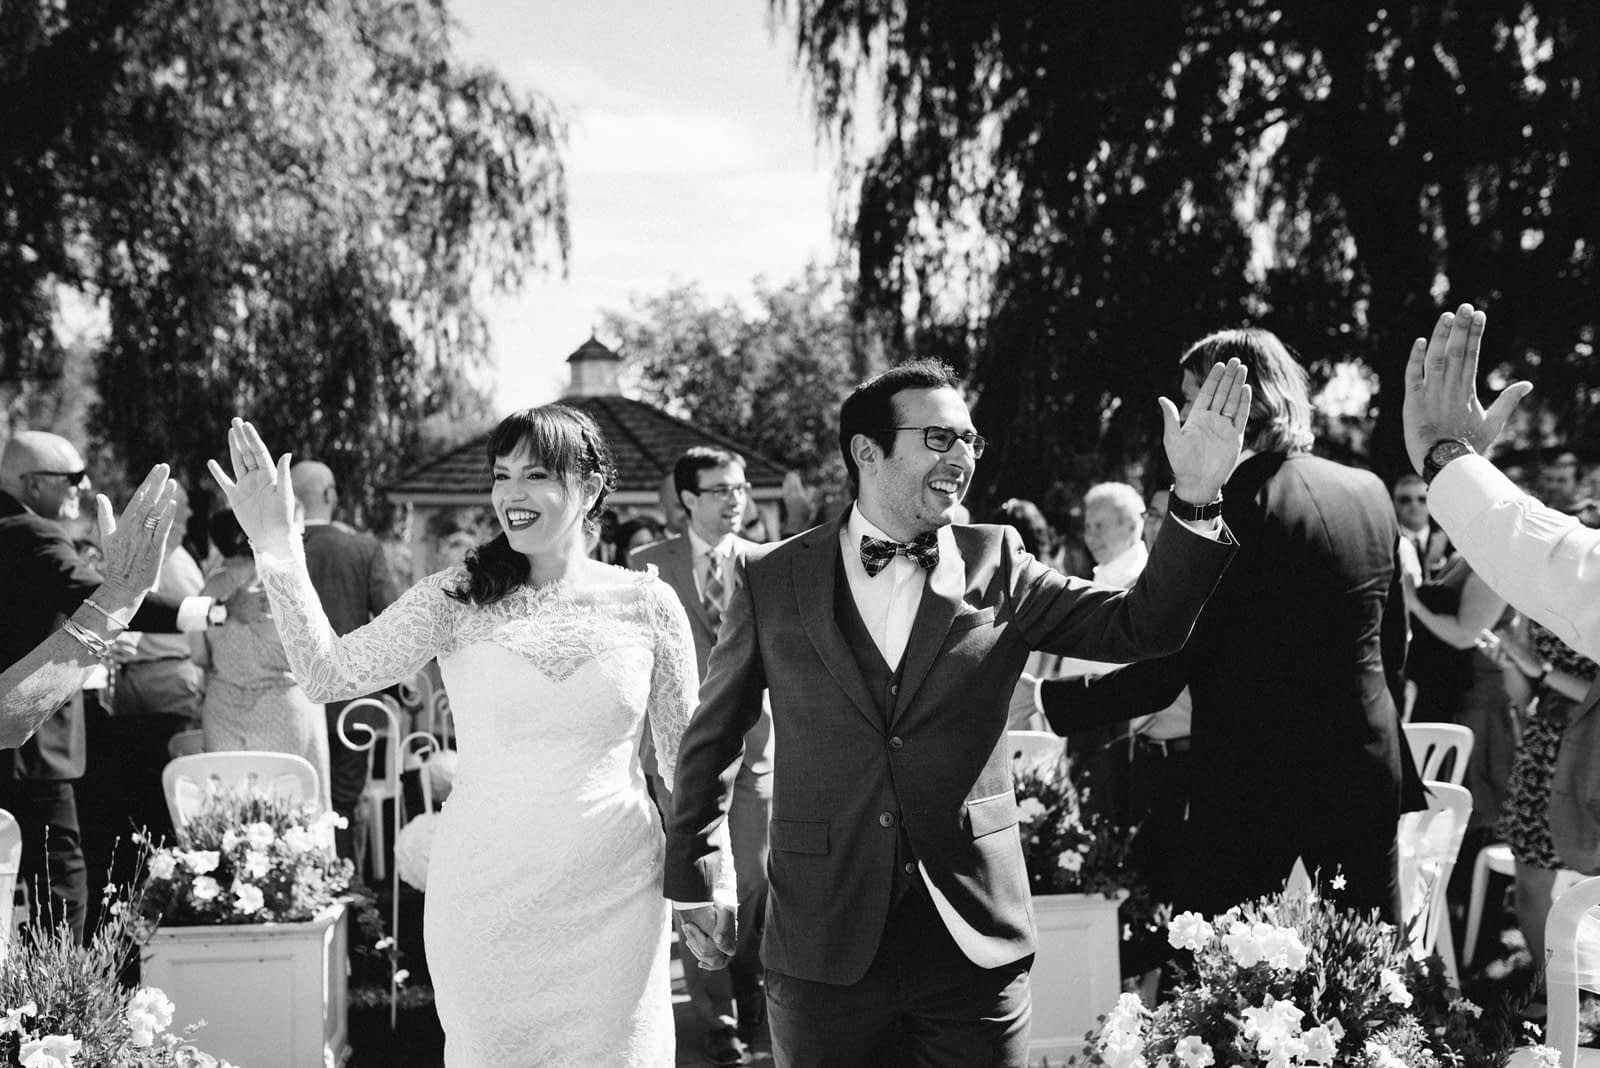 Bride and groom high fiving wedding guests as they walk down the aisle